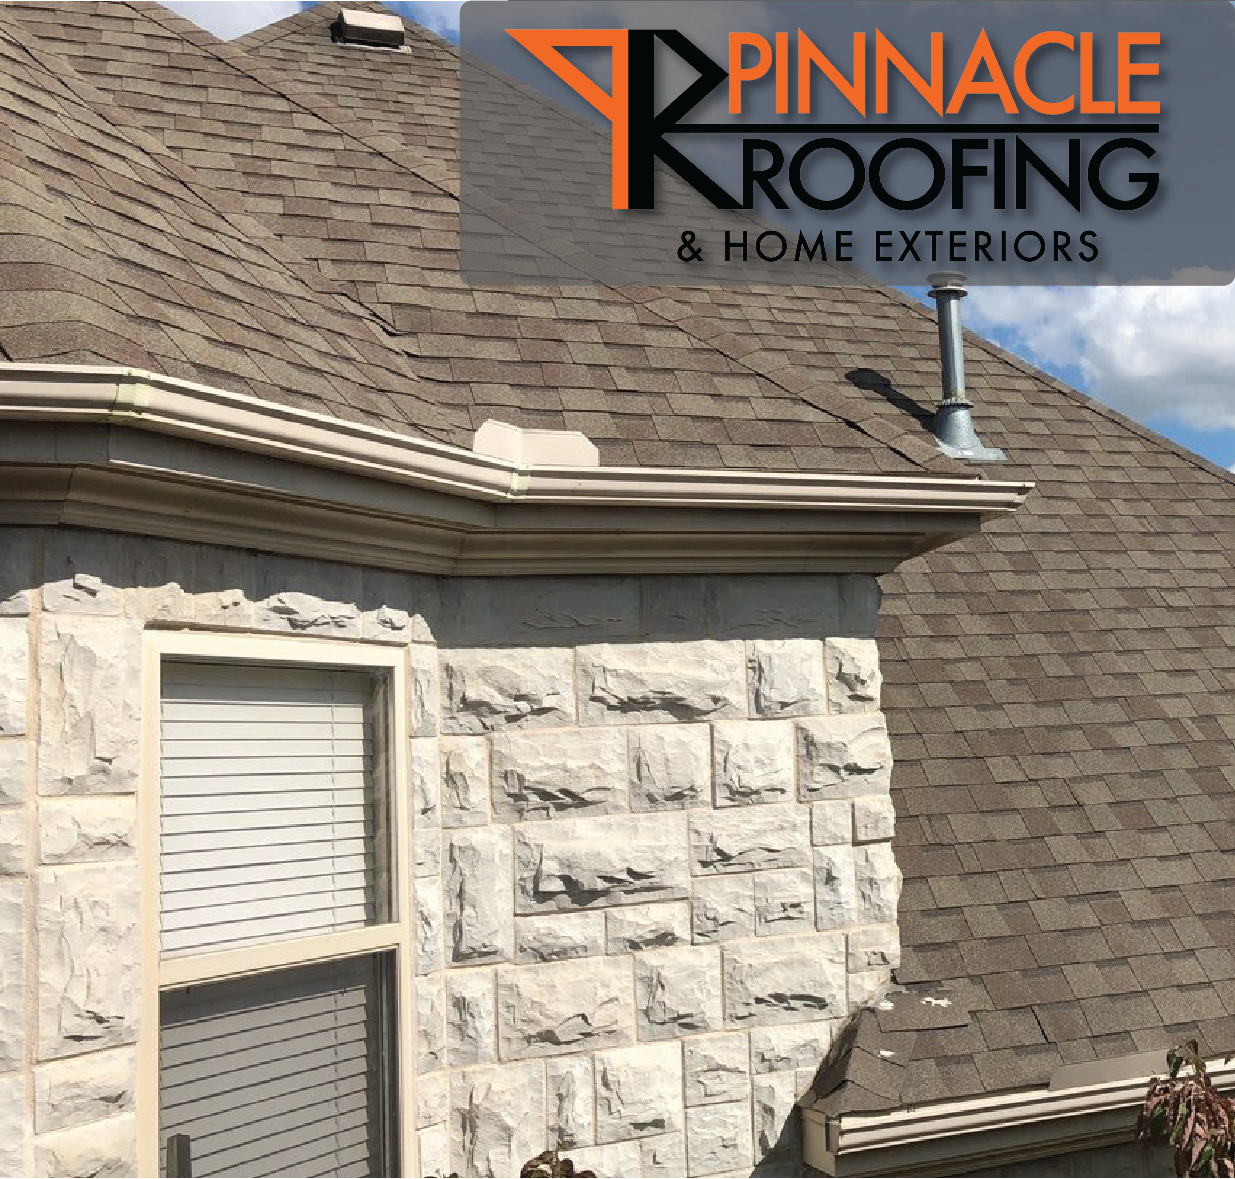 Asphalt Shingle Roofing Is Now More Affordable And Energy Efficient Asphaltshingles Energyefficient Nwa Pinnacleroofi Roofing Asphalt Shingles Shingling